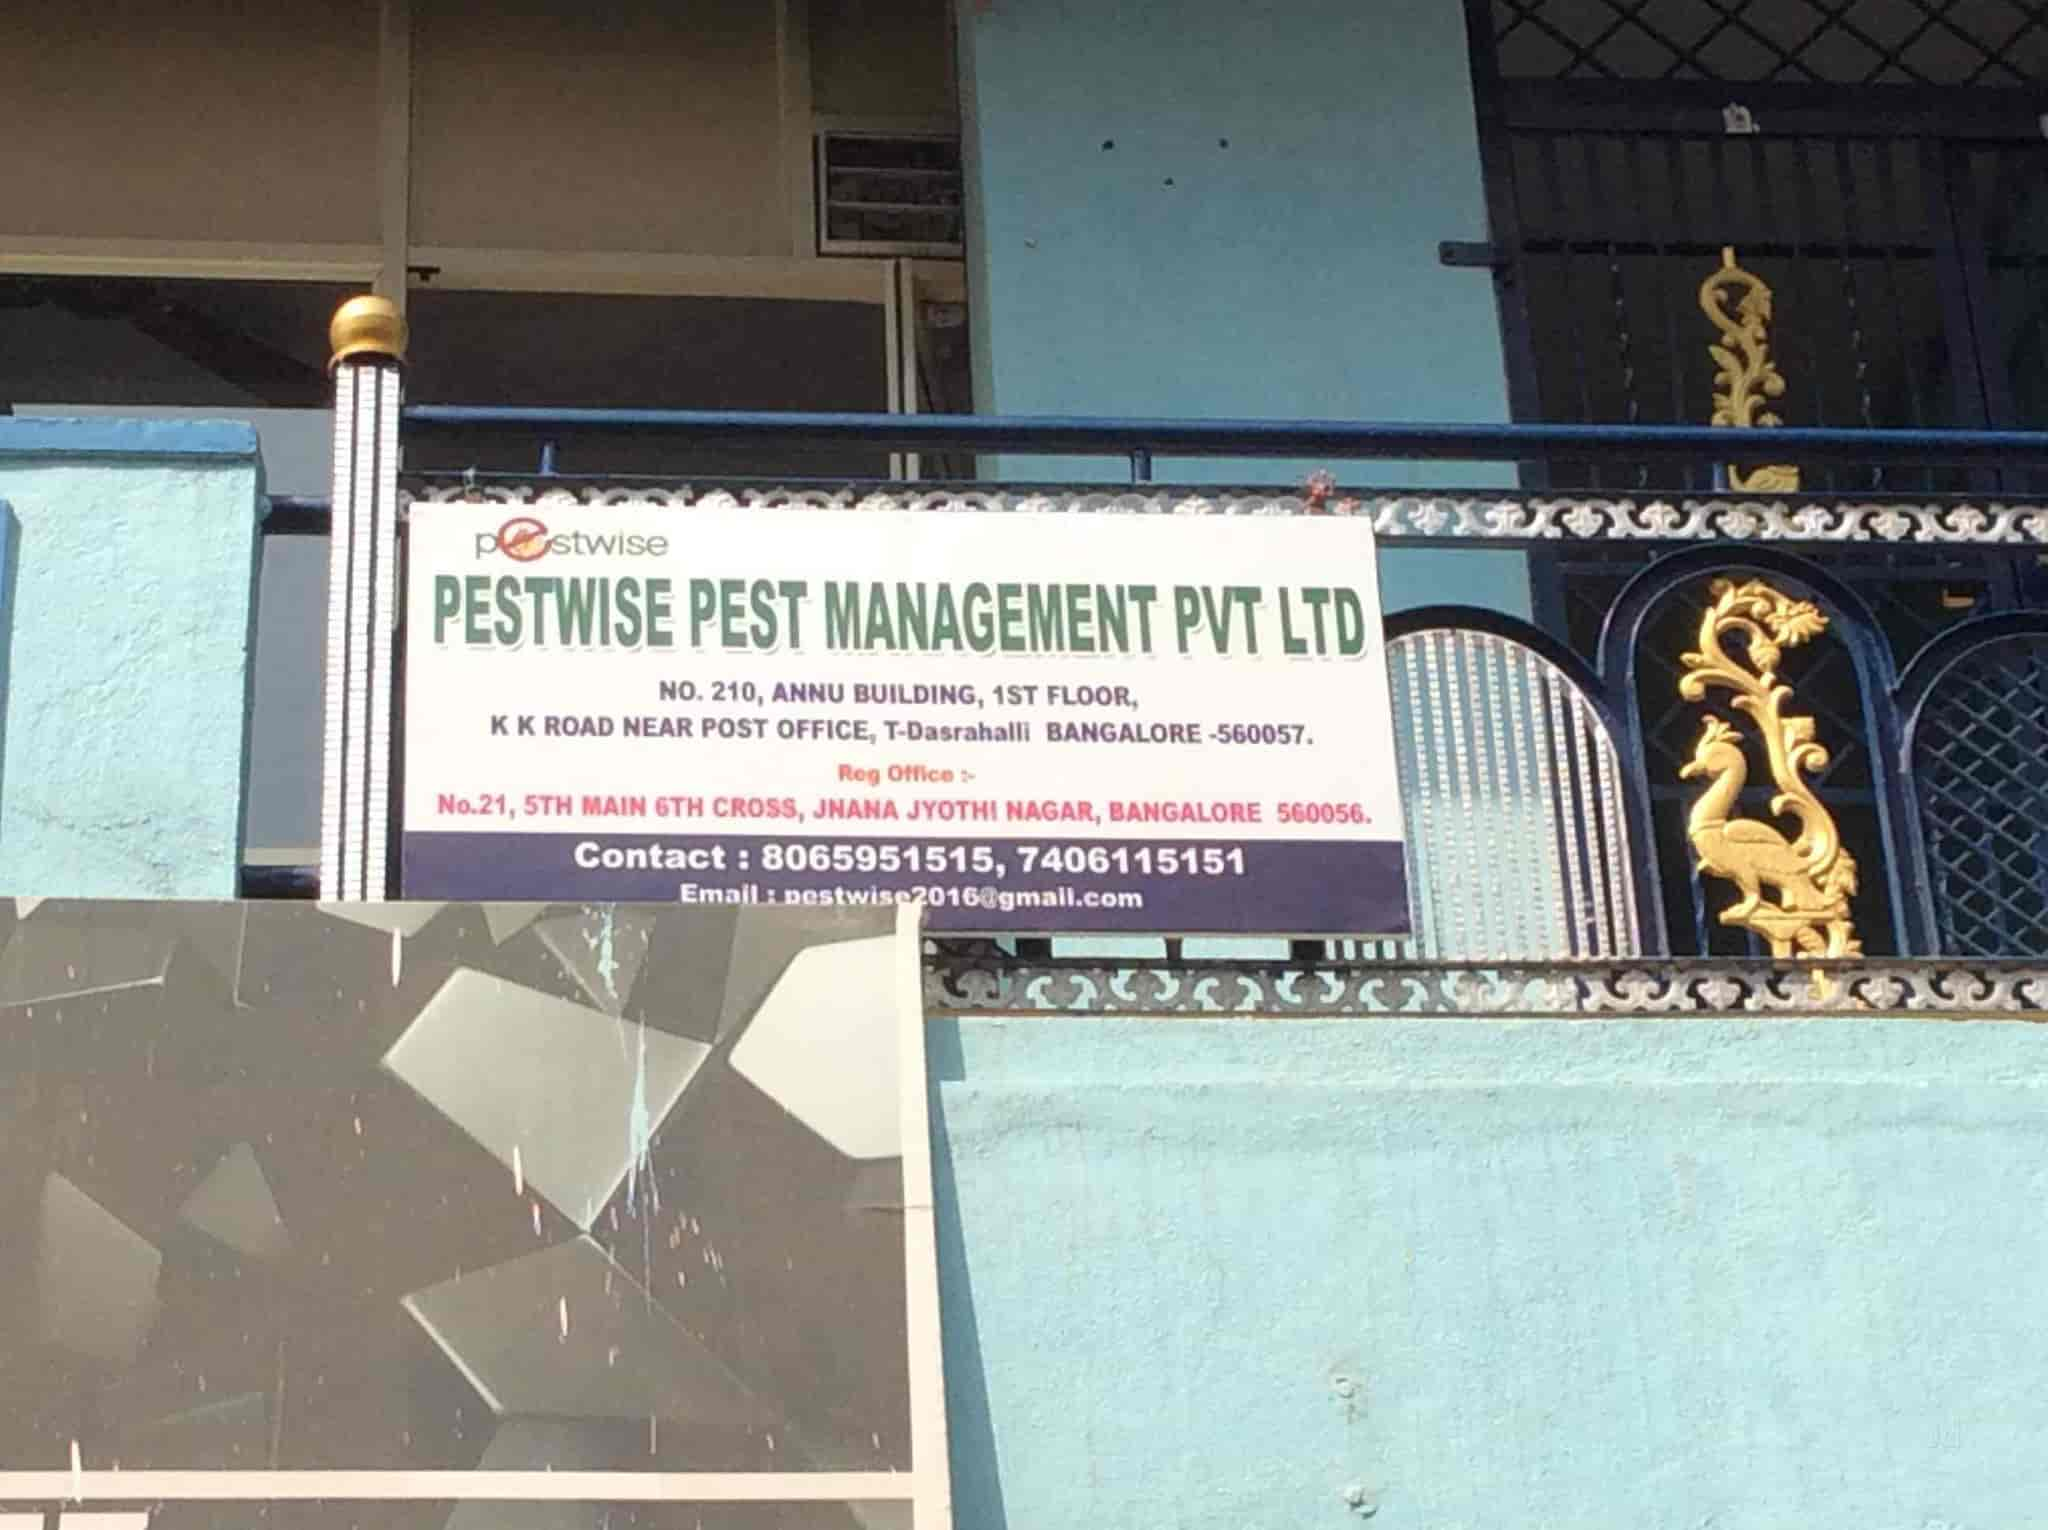 Pestwise Pest Management Pvt Ltd, T Dasarahalli   Residential Pest Control  Services In Bangalore   Justdial